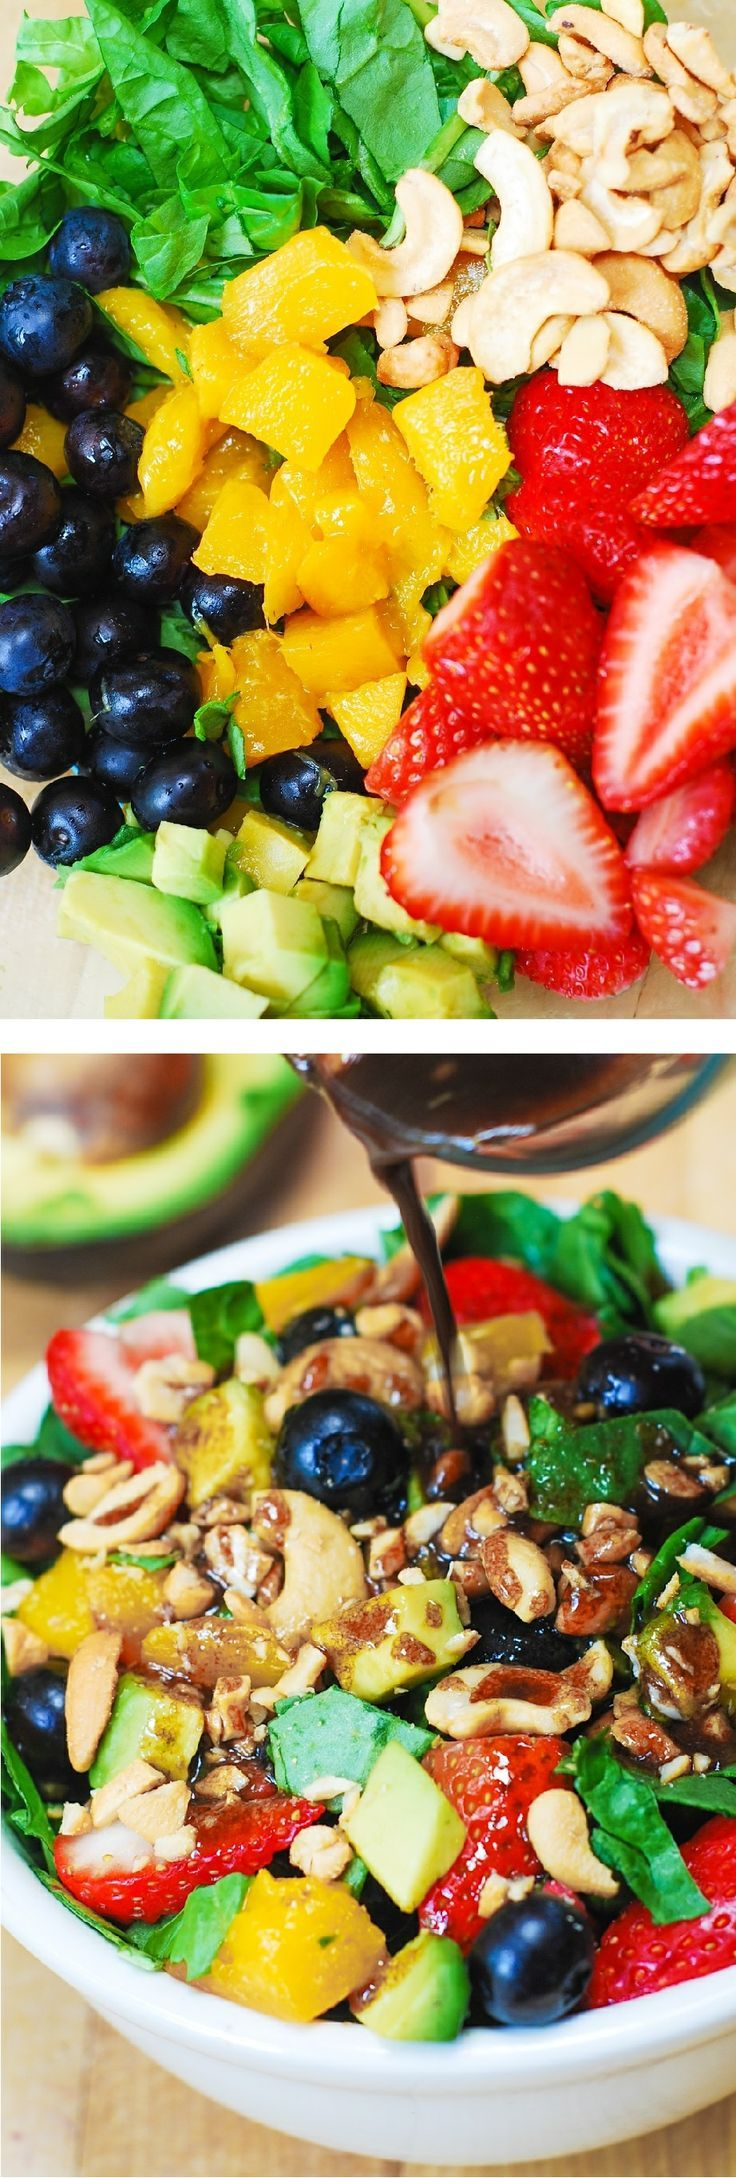 Strawberry Spinach Salad | This looks like a really mouth-watering salad to try. #youresopretty